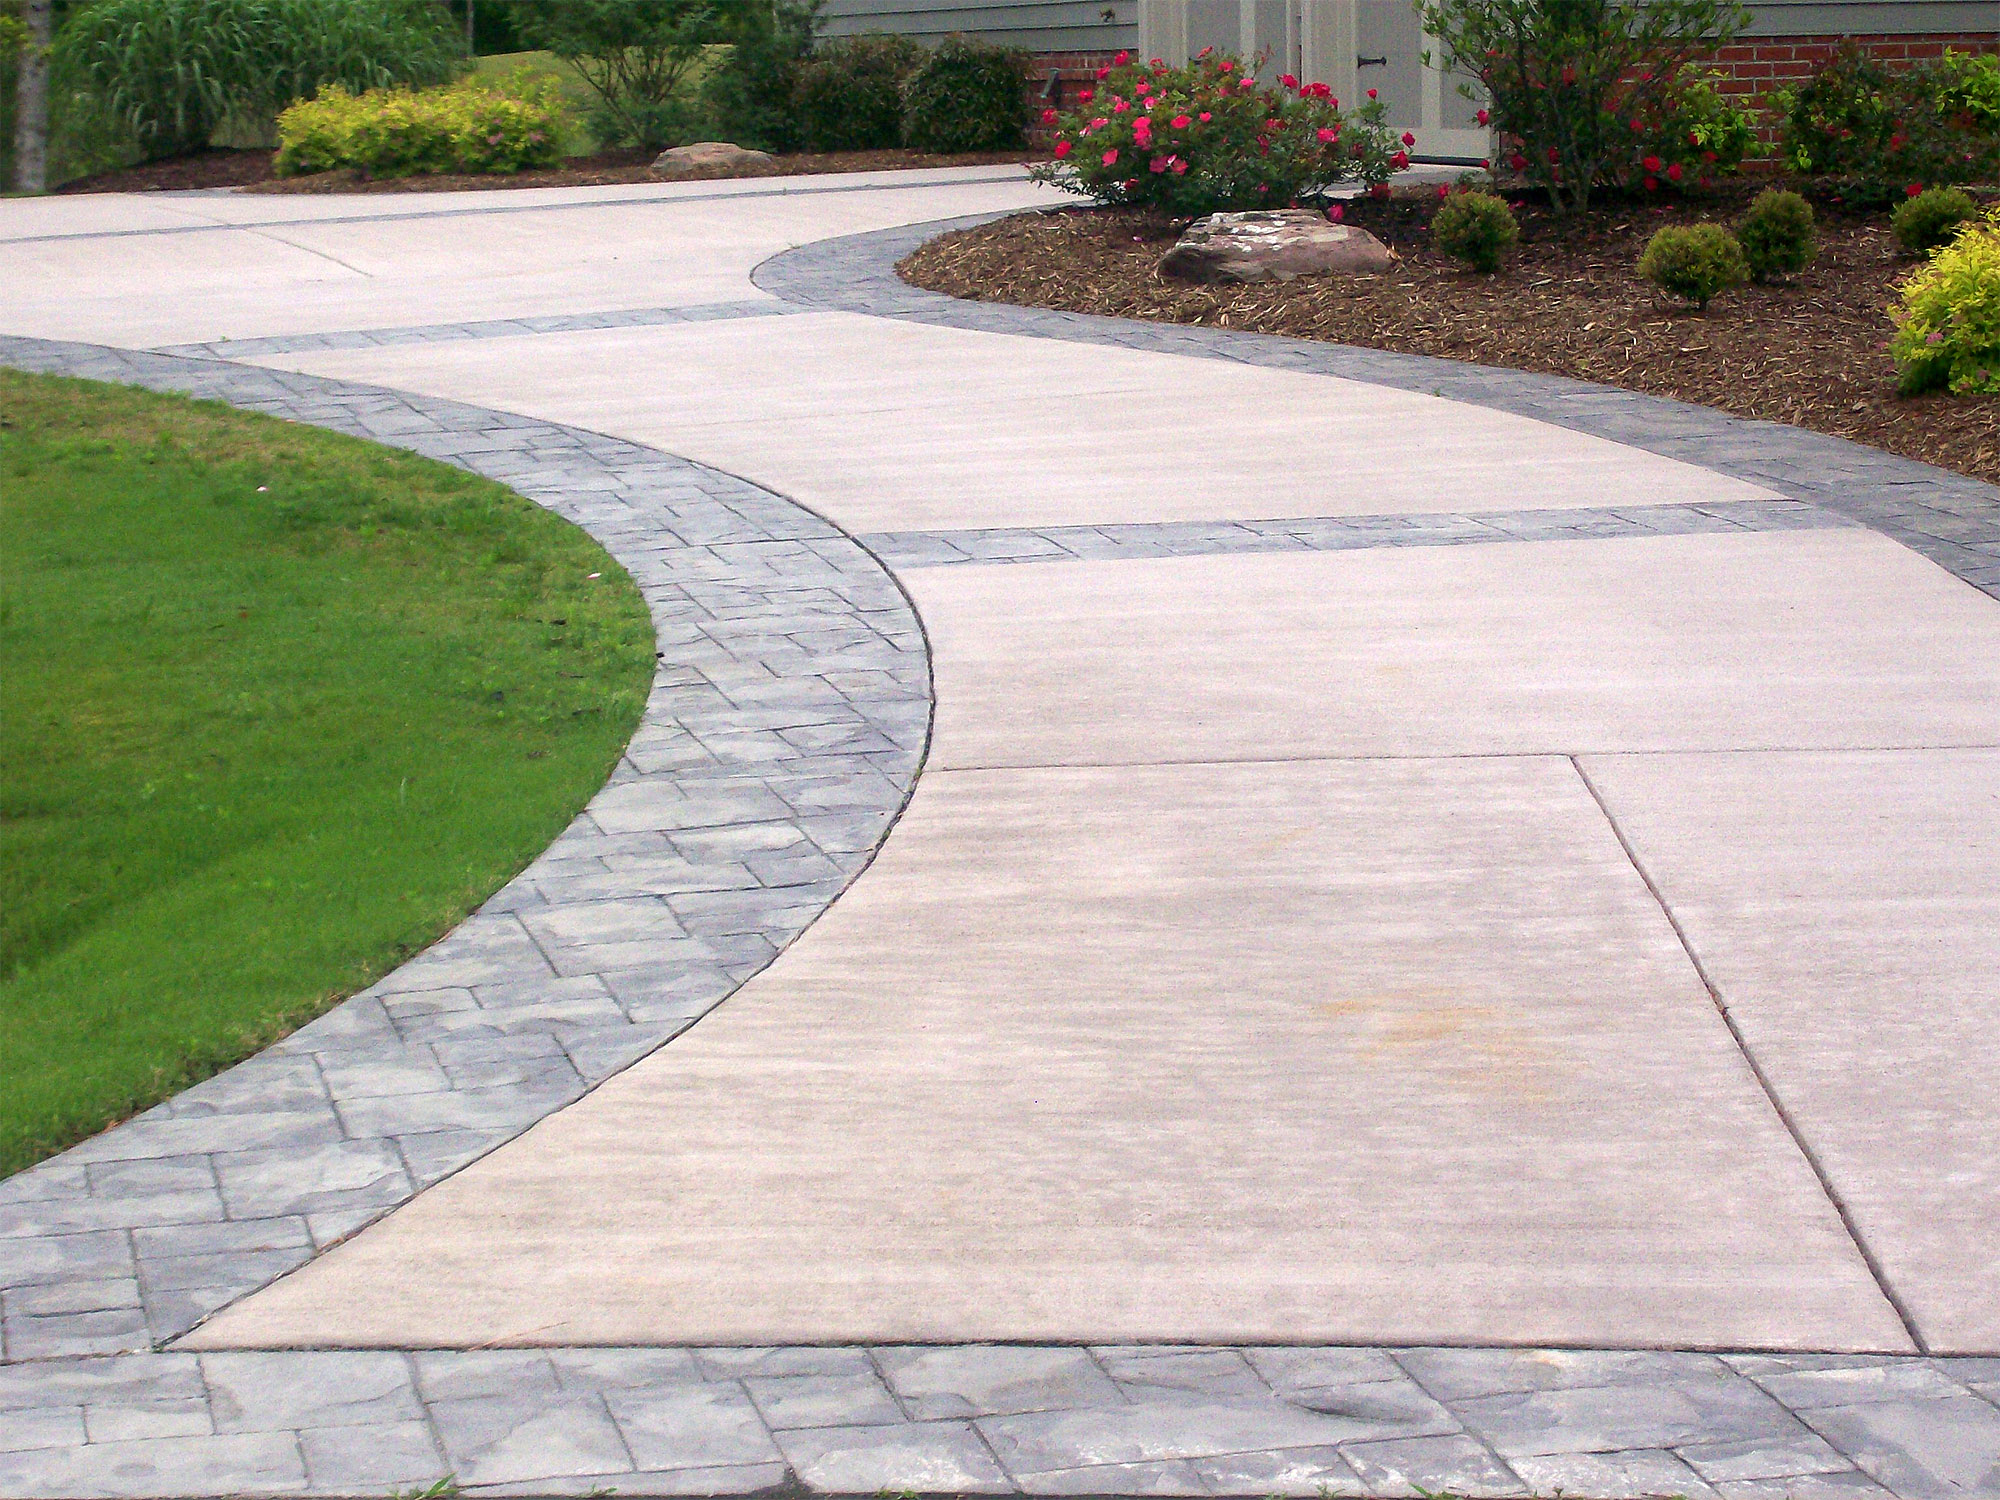 Refinished Concrete Driveway With Decorative Stamped Pavers And Asphalt